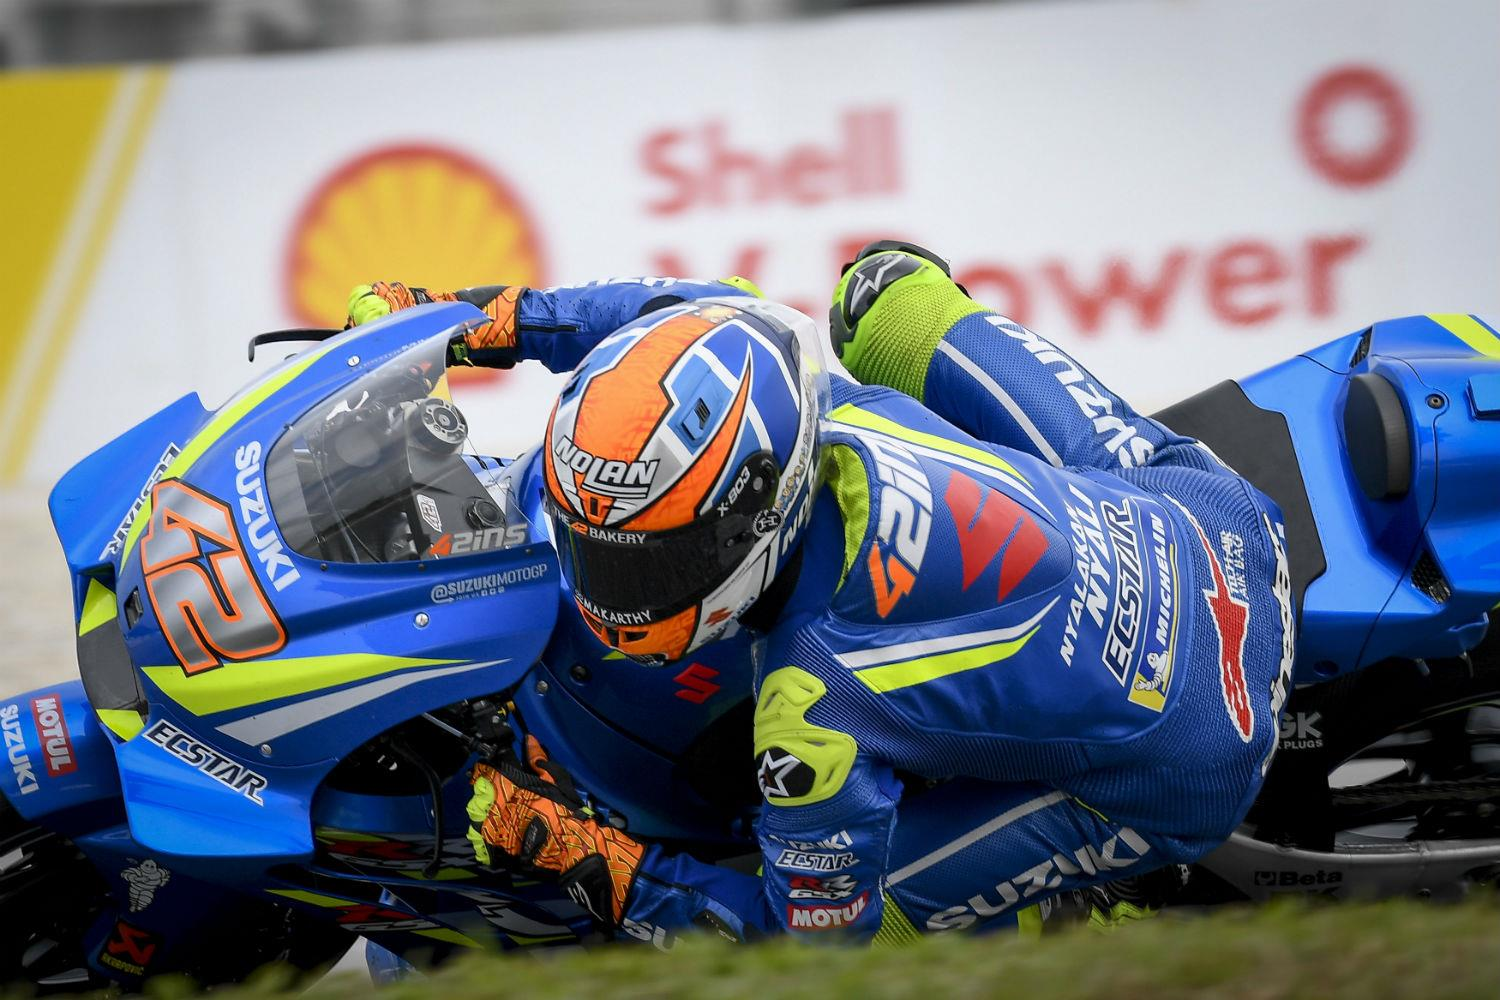 Marquez wins Malaysian MotoGP as Rossi crashes out of lead